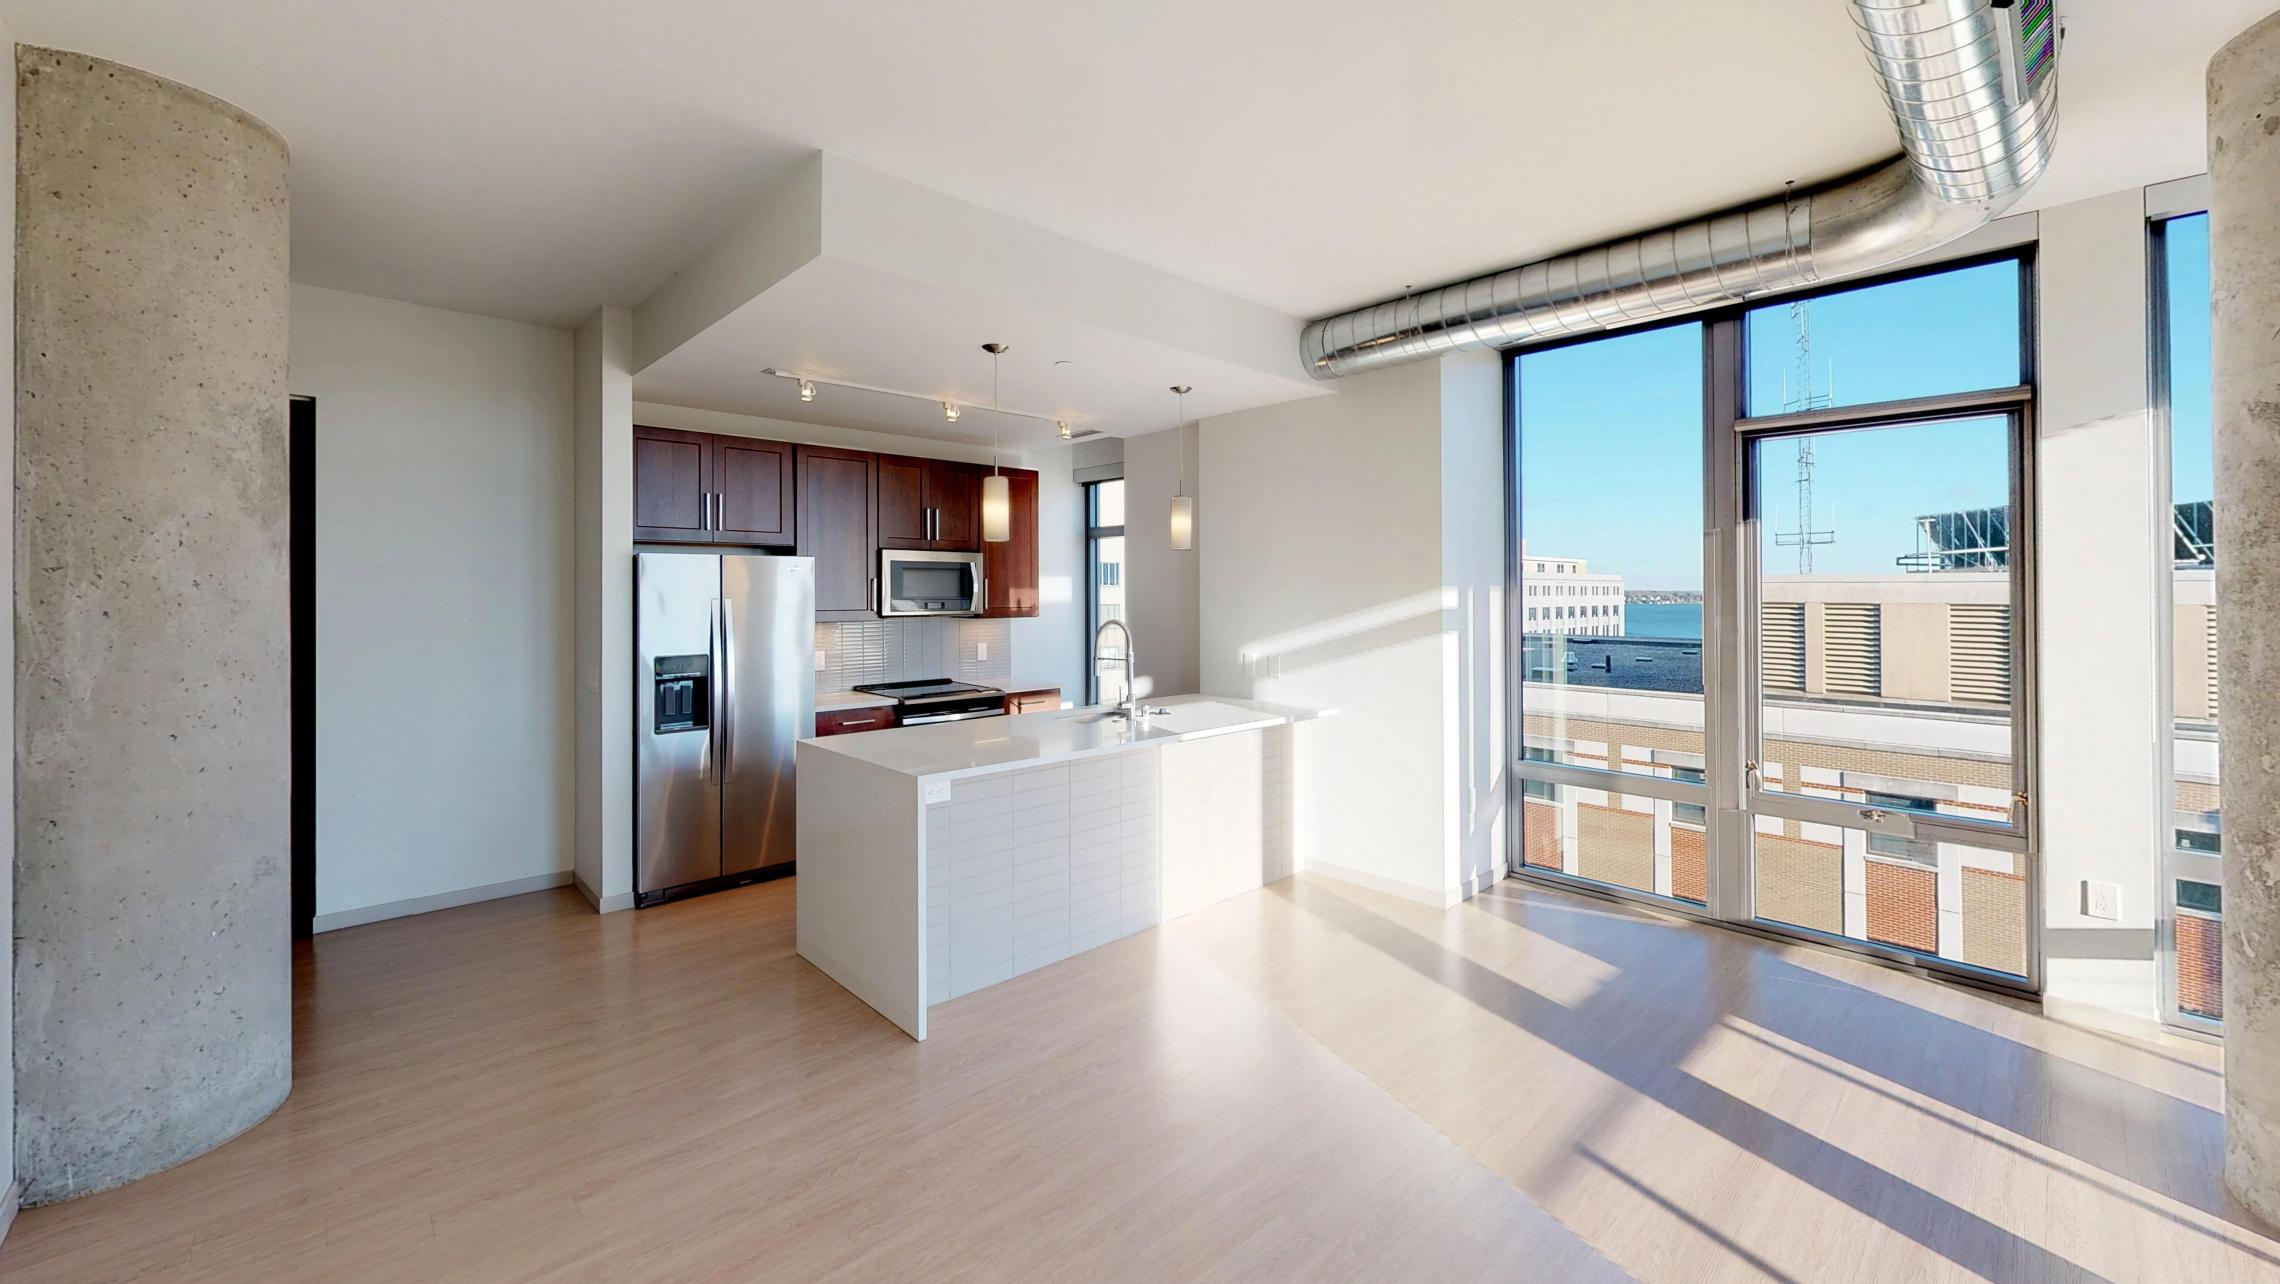 The-Pressman-Apartments-Upscale-Club-room-Modern-Luxury-Downtown-Madison-High-Rise-Lifestyle-Capitol-Square-One-Bedroom-Views-Lake